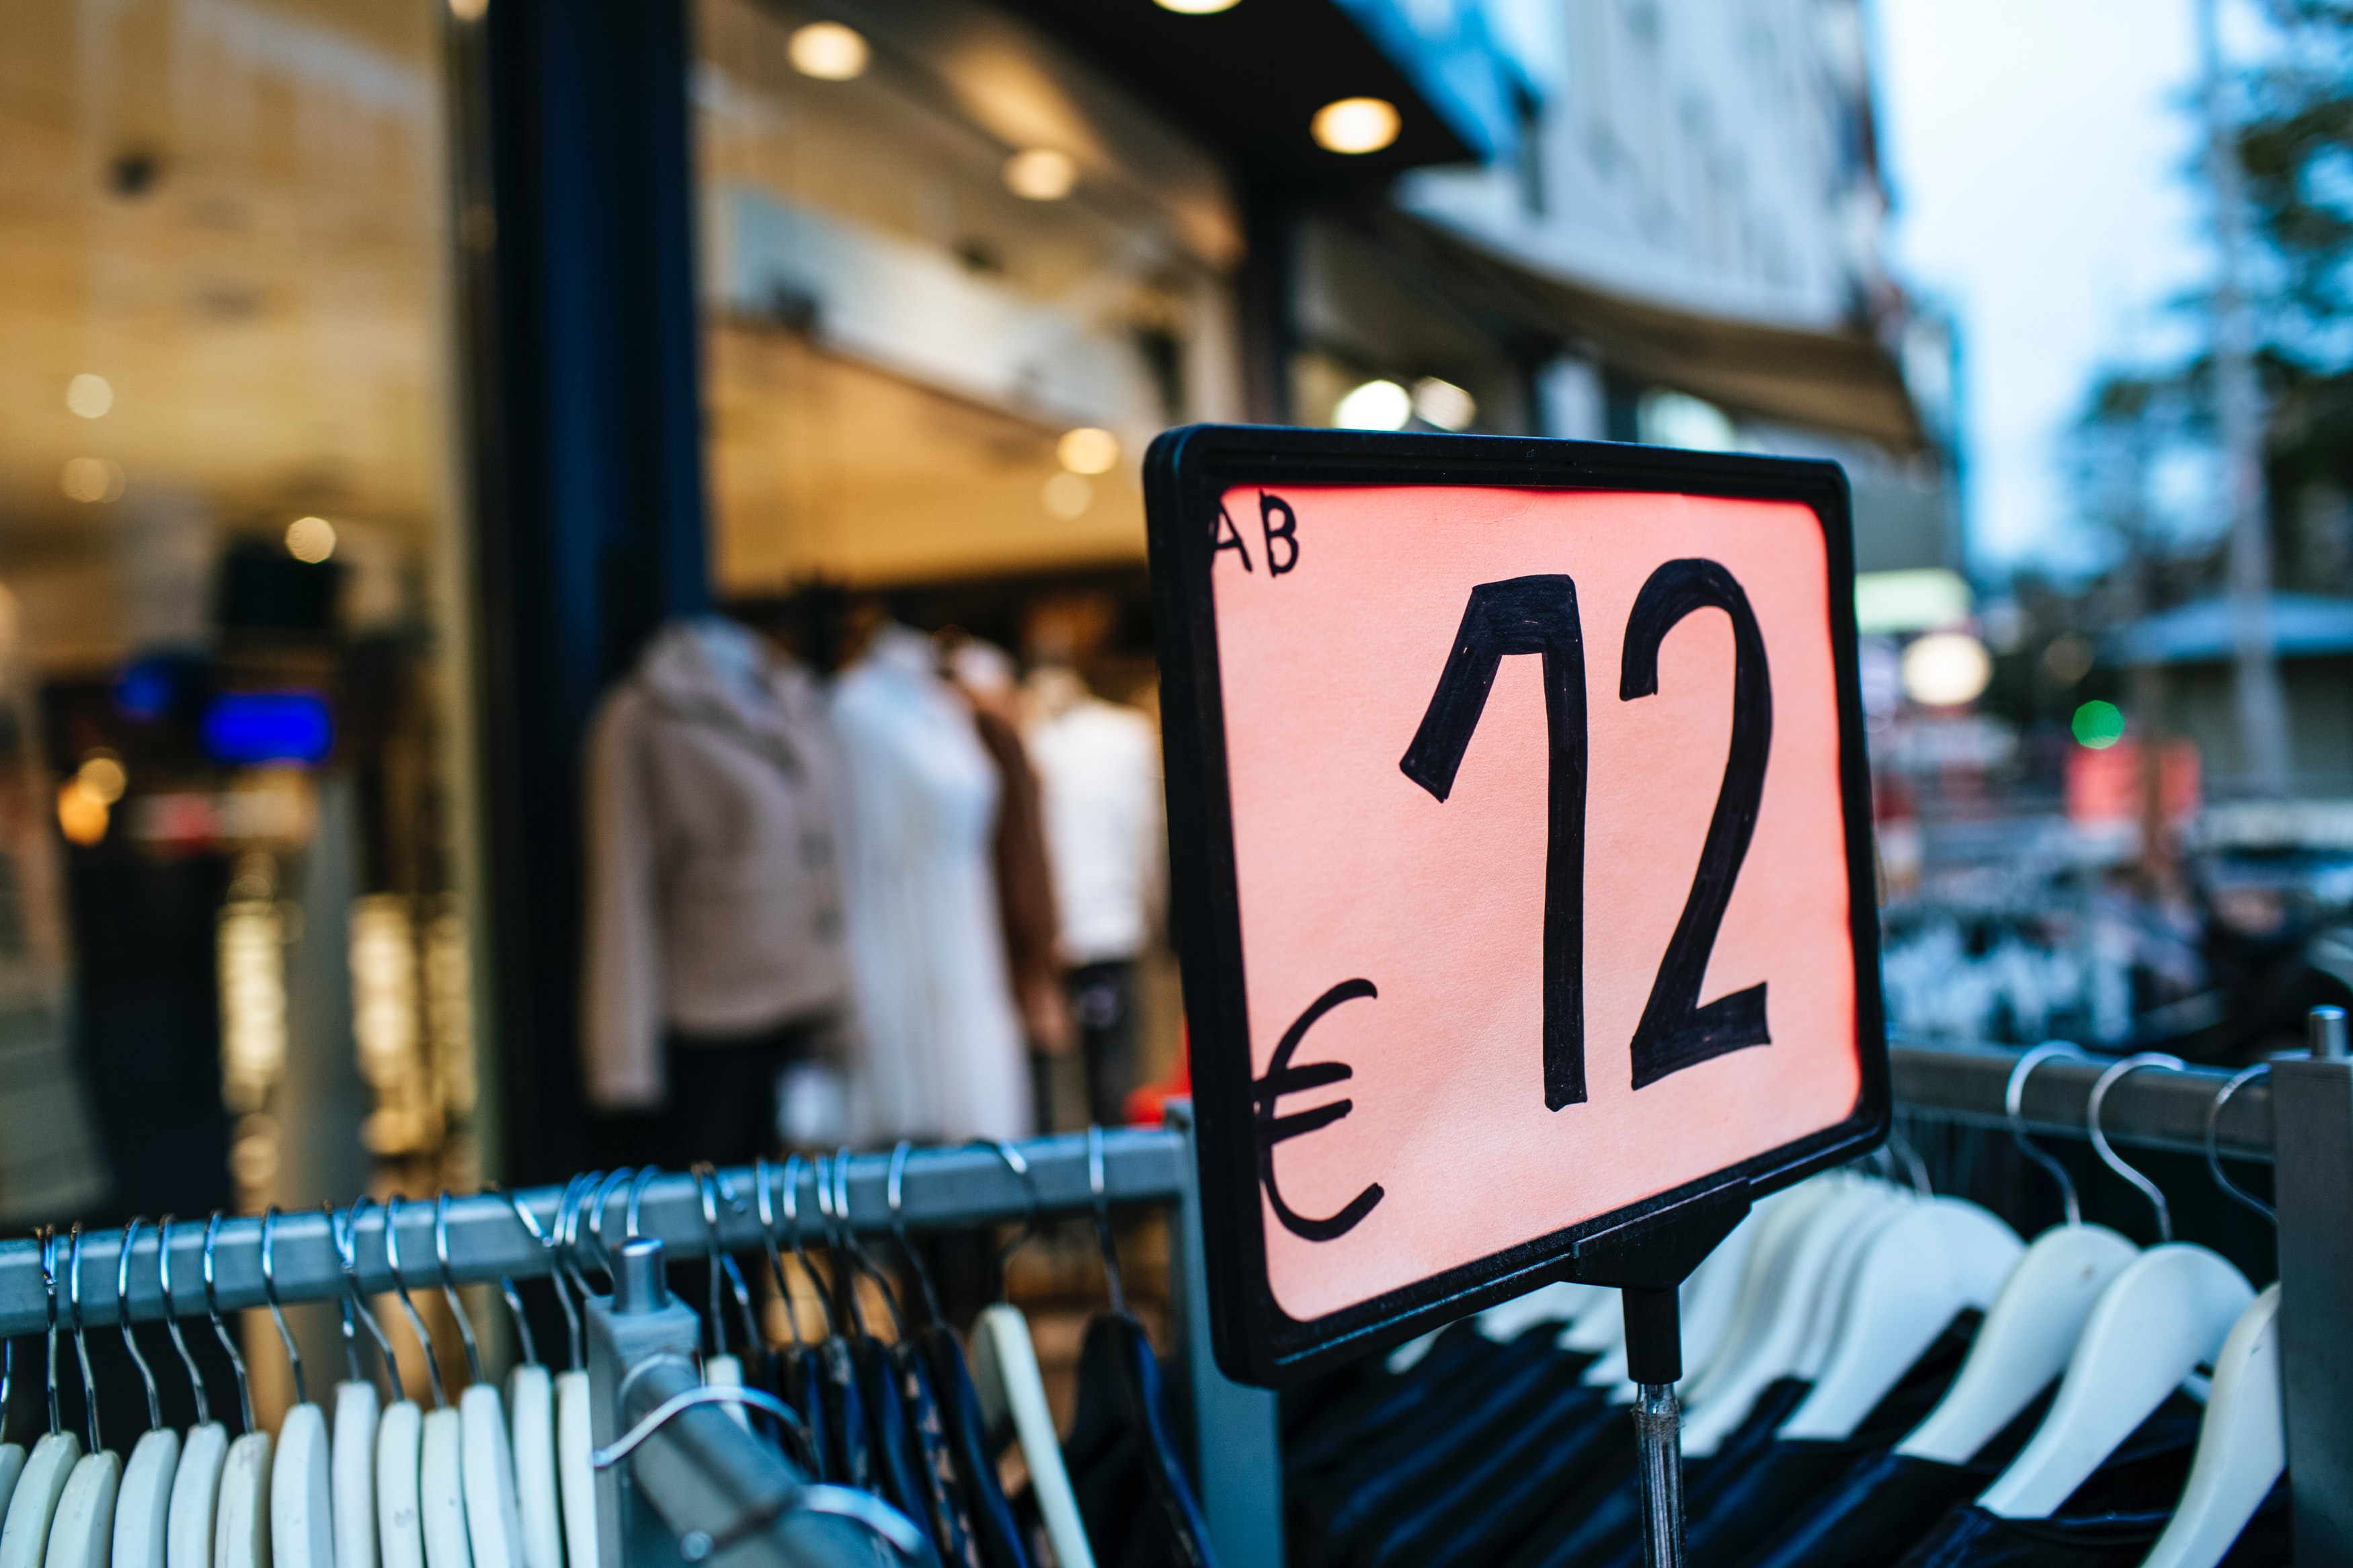 """Racks of clothing stand outside a storefront with a sign that reads """"€12."""" Photo courtesy of Markus Spiske on Unsplash."""